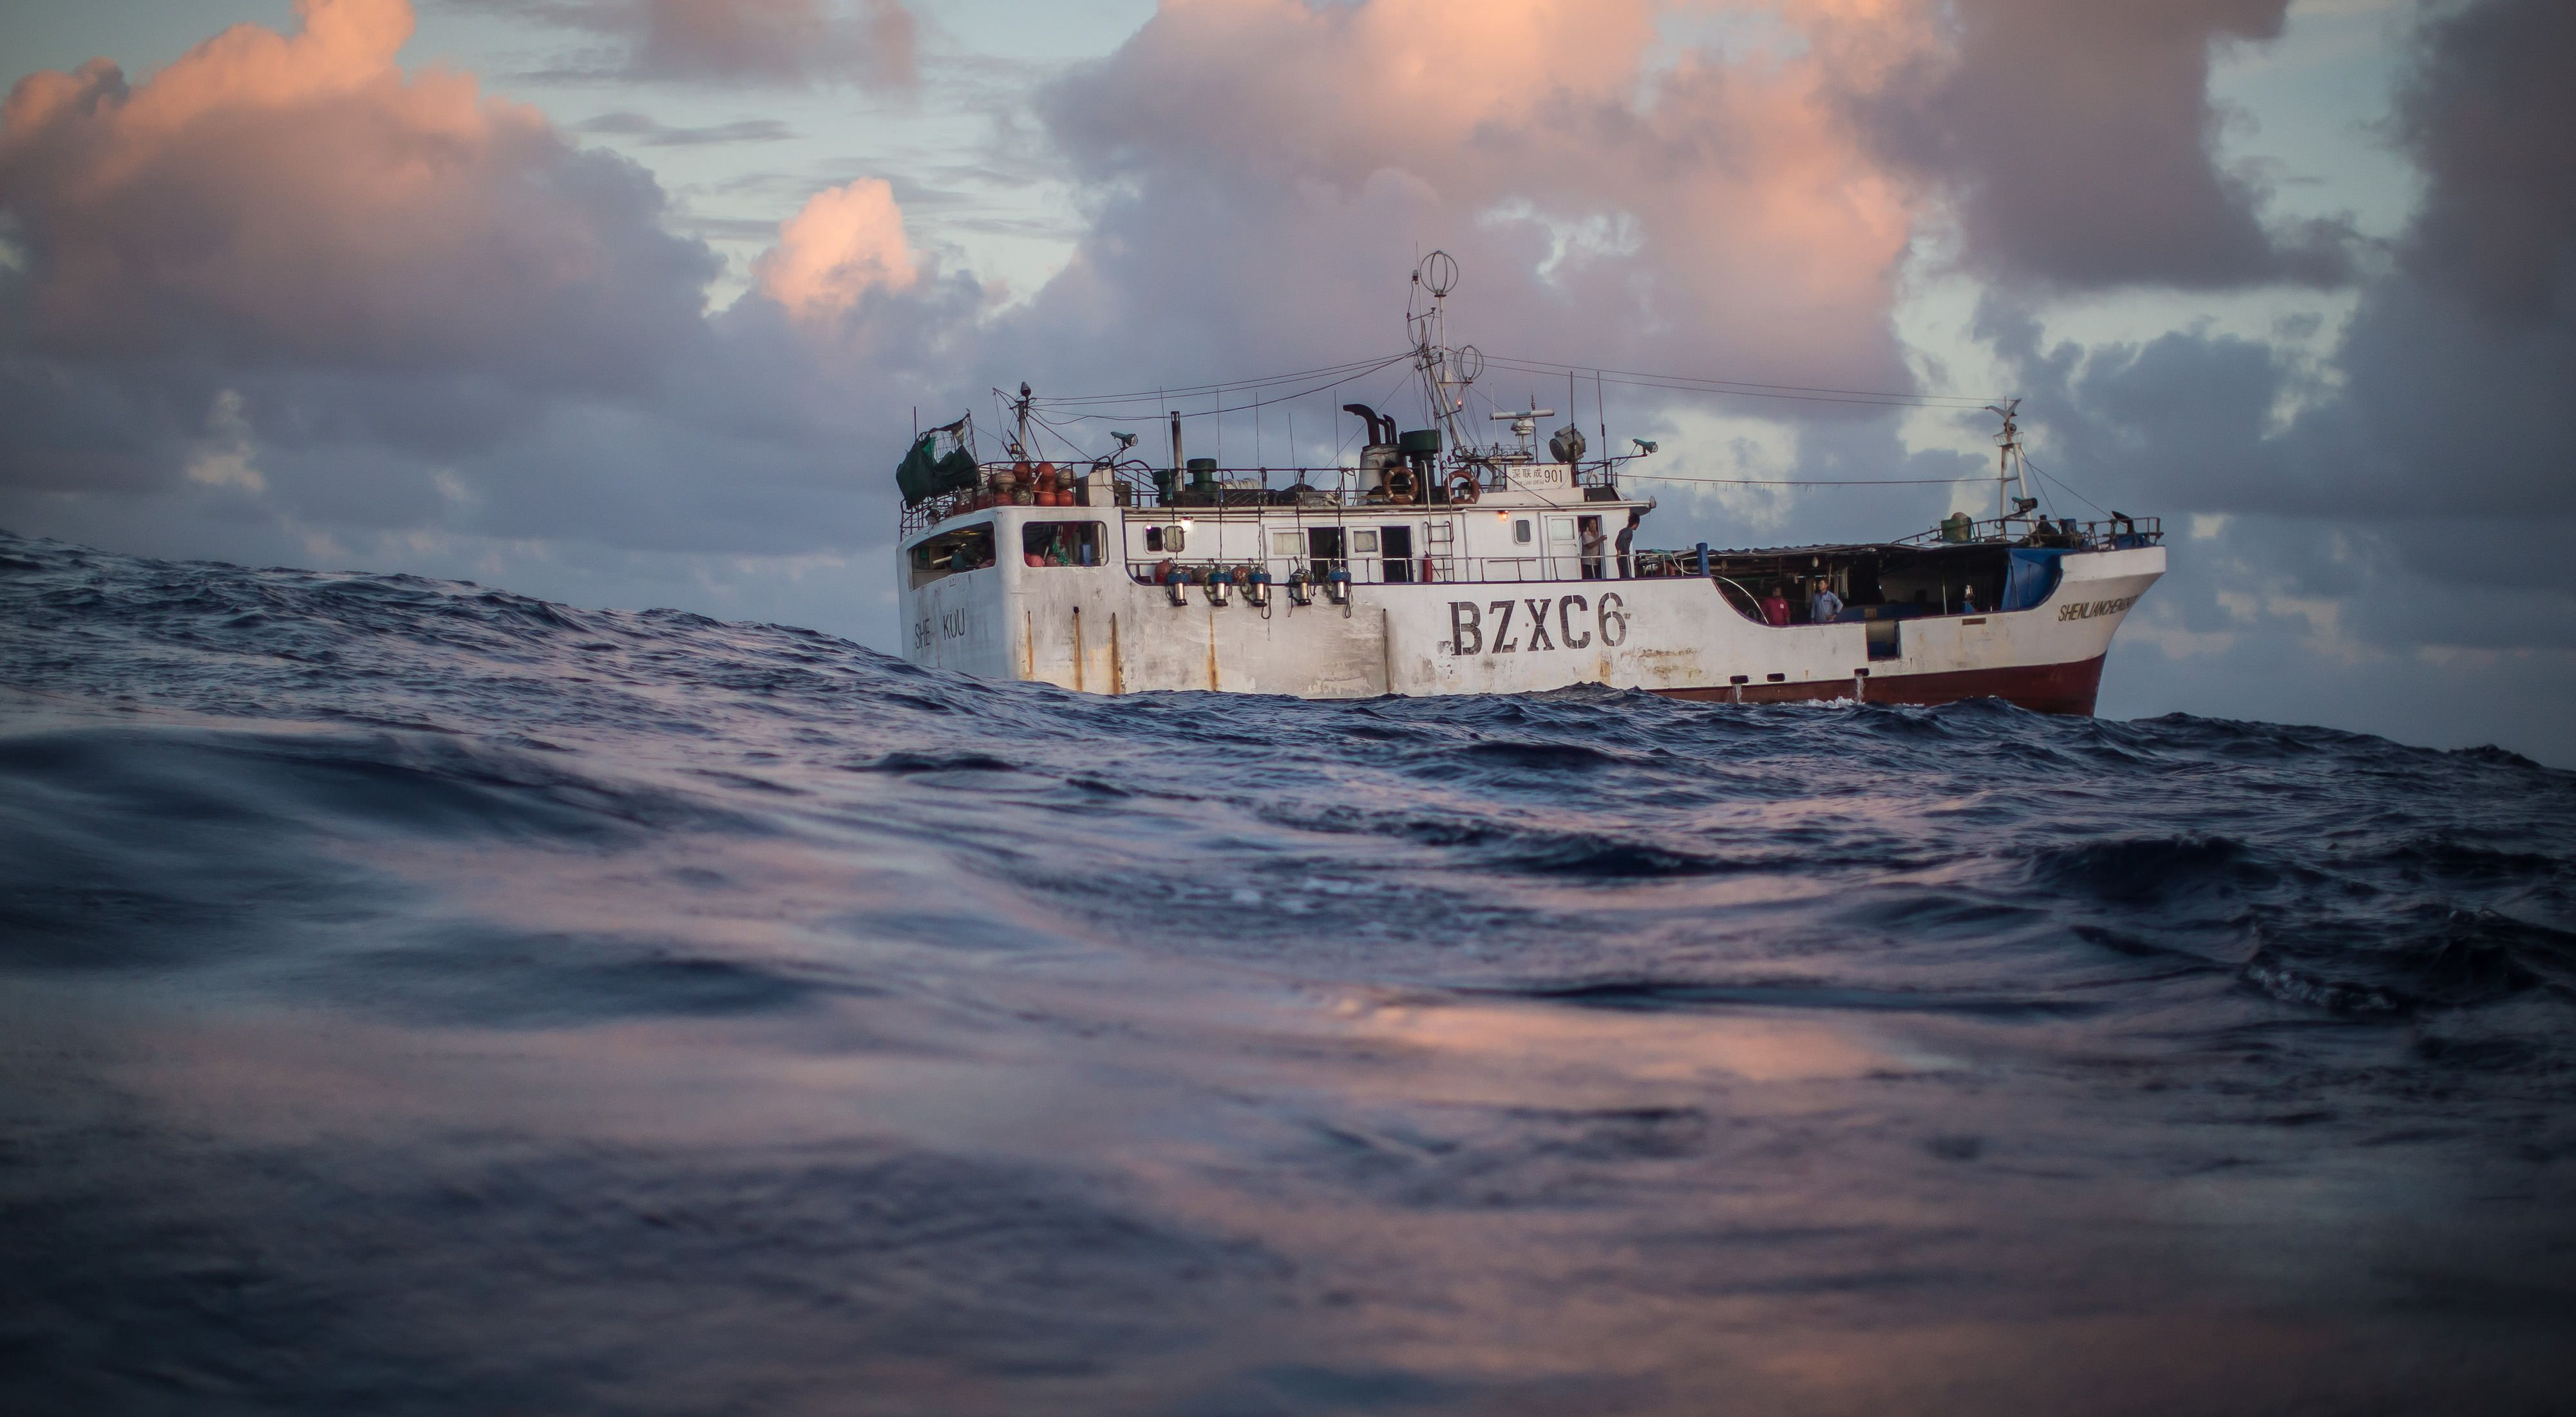 TNC is working with fishermen in Palau to test new fishing practices and methods to reduce bycatch and to sustainably manage the Pacific tuna fishery.